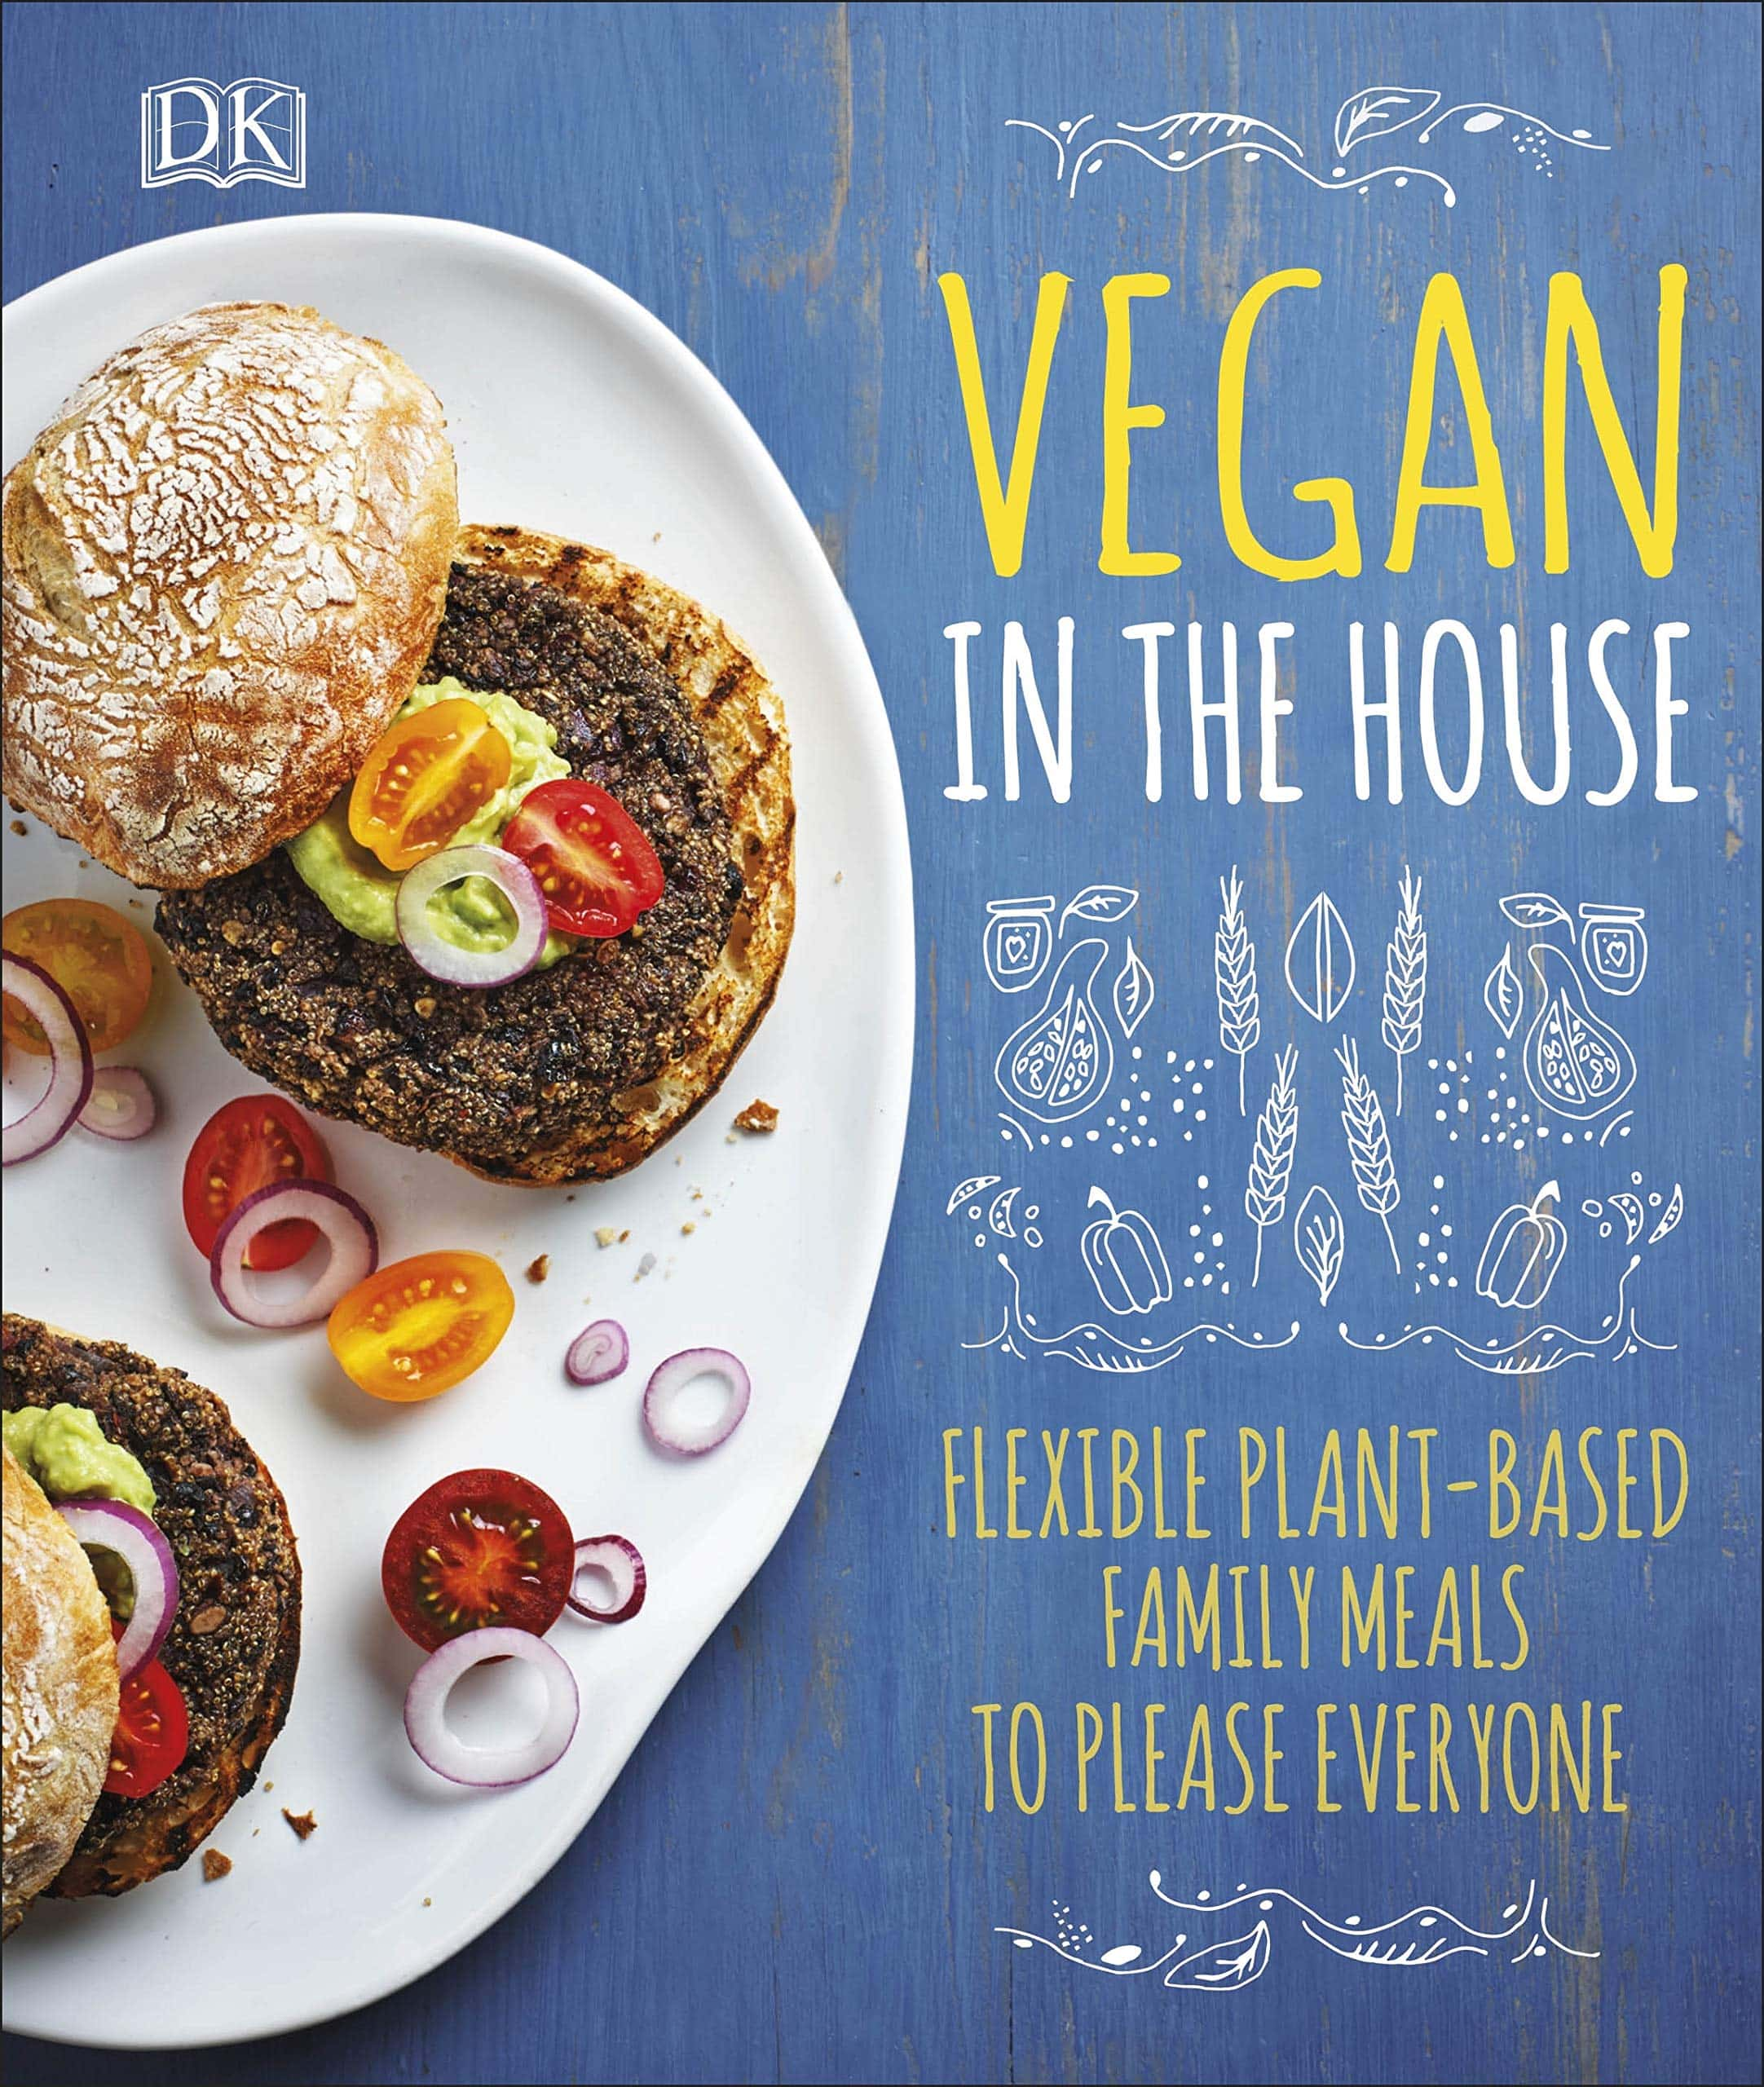 Vegan in the House is includes a great selection of vegan recipes that are family friendly. It also explains how to meet your dietary requirements while following a vegan lifestyle. It is an excellent resource to have on-hand if you are trying to include vegan options at family dinners, or if you are trying to add more plant-based meals to your own diet.